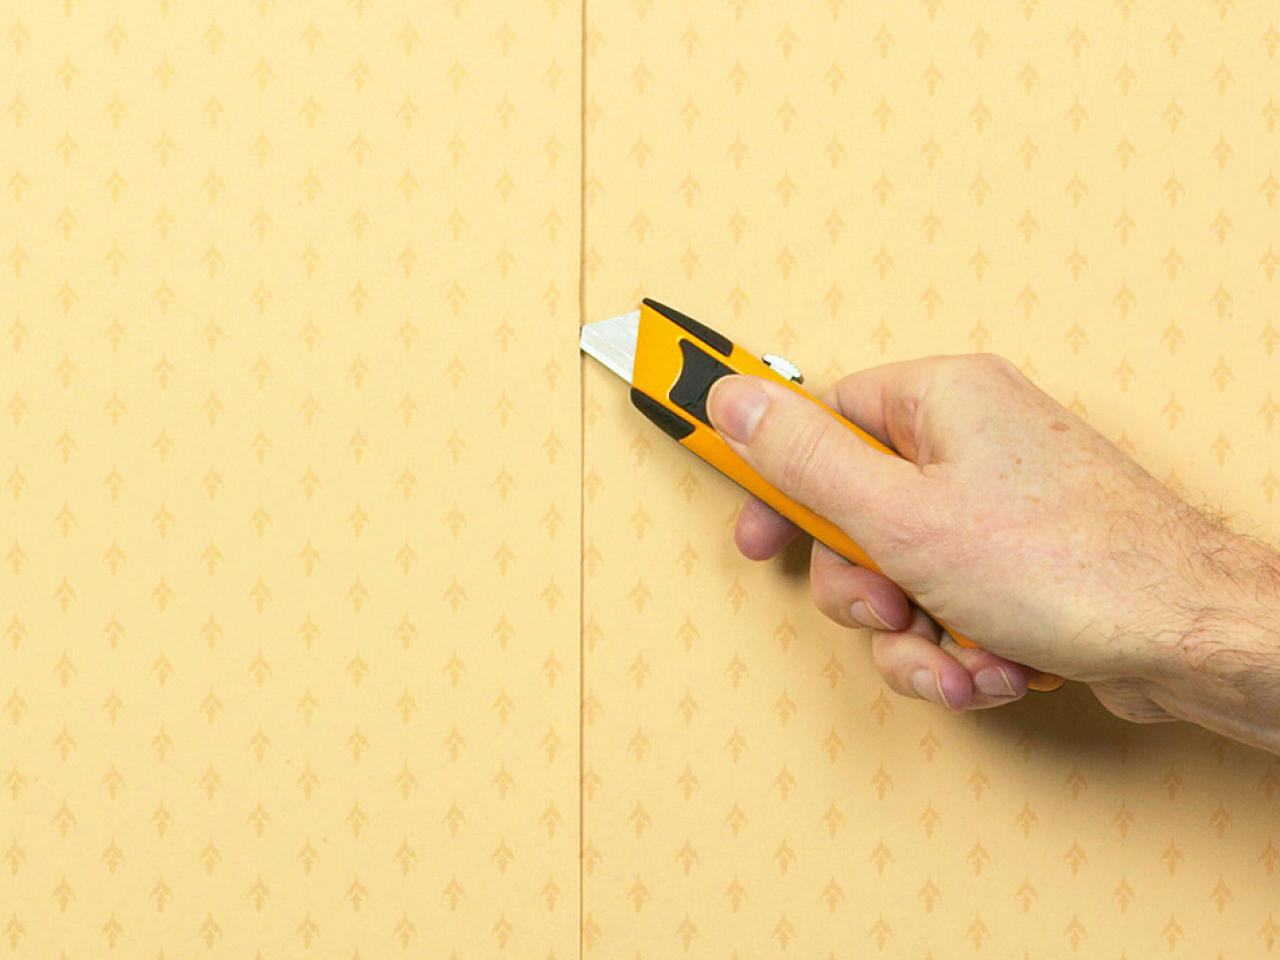 https://sense-life.com/wp-content/uploads/2019/04/how-to-get-creases-out-of-wallpaper-1420852808872.jpg